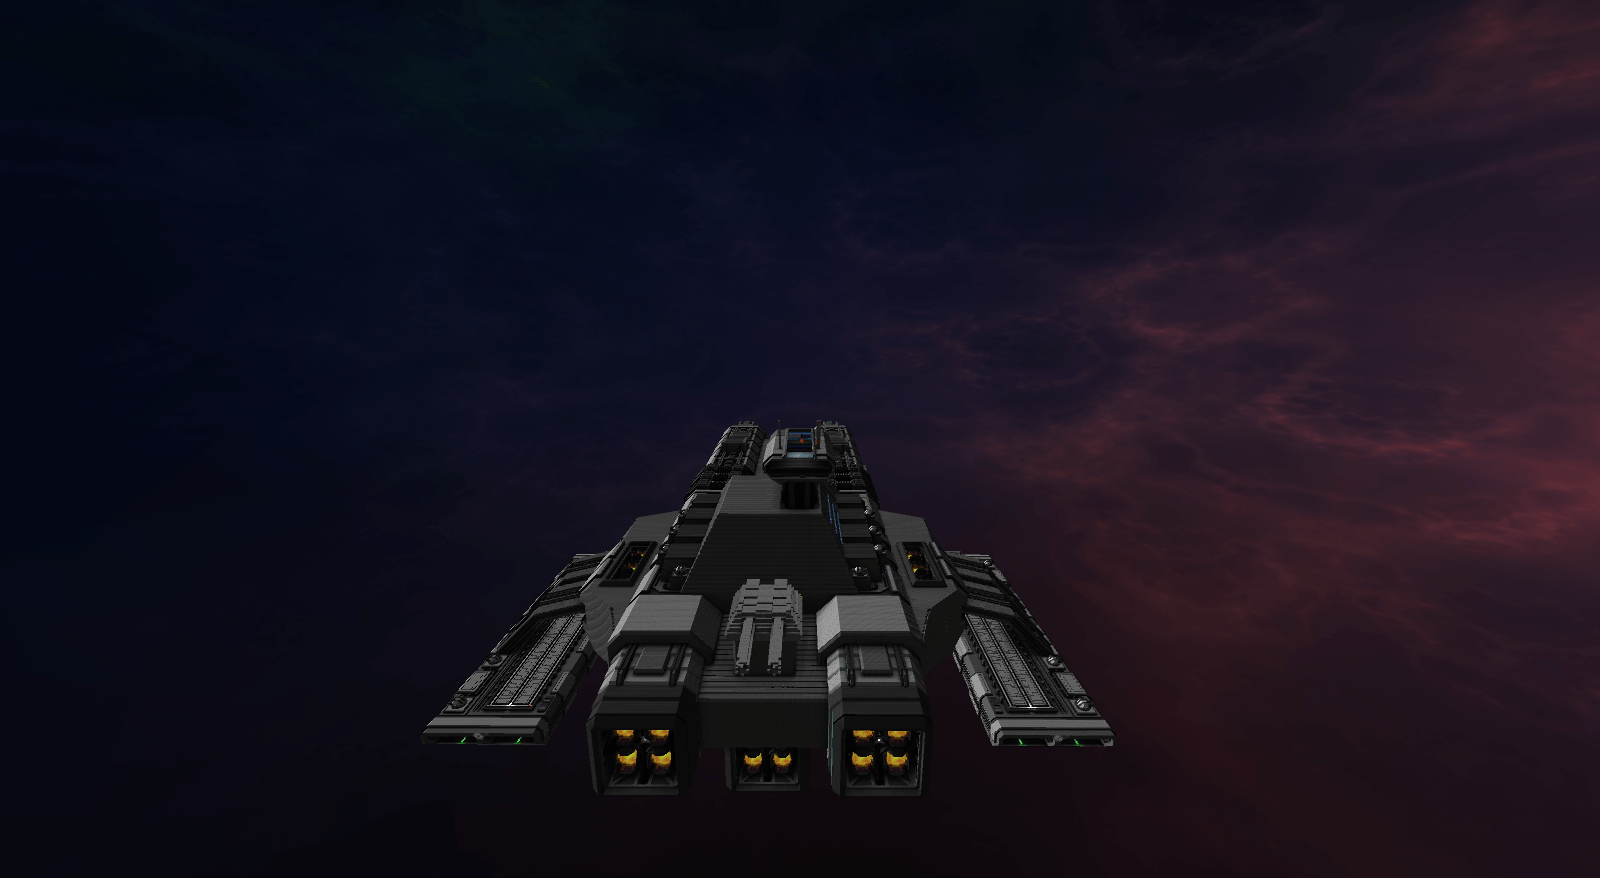 starmade-screenshot-0009.png